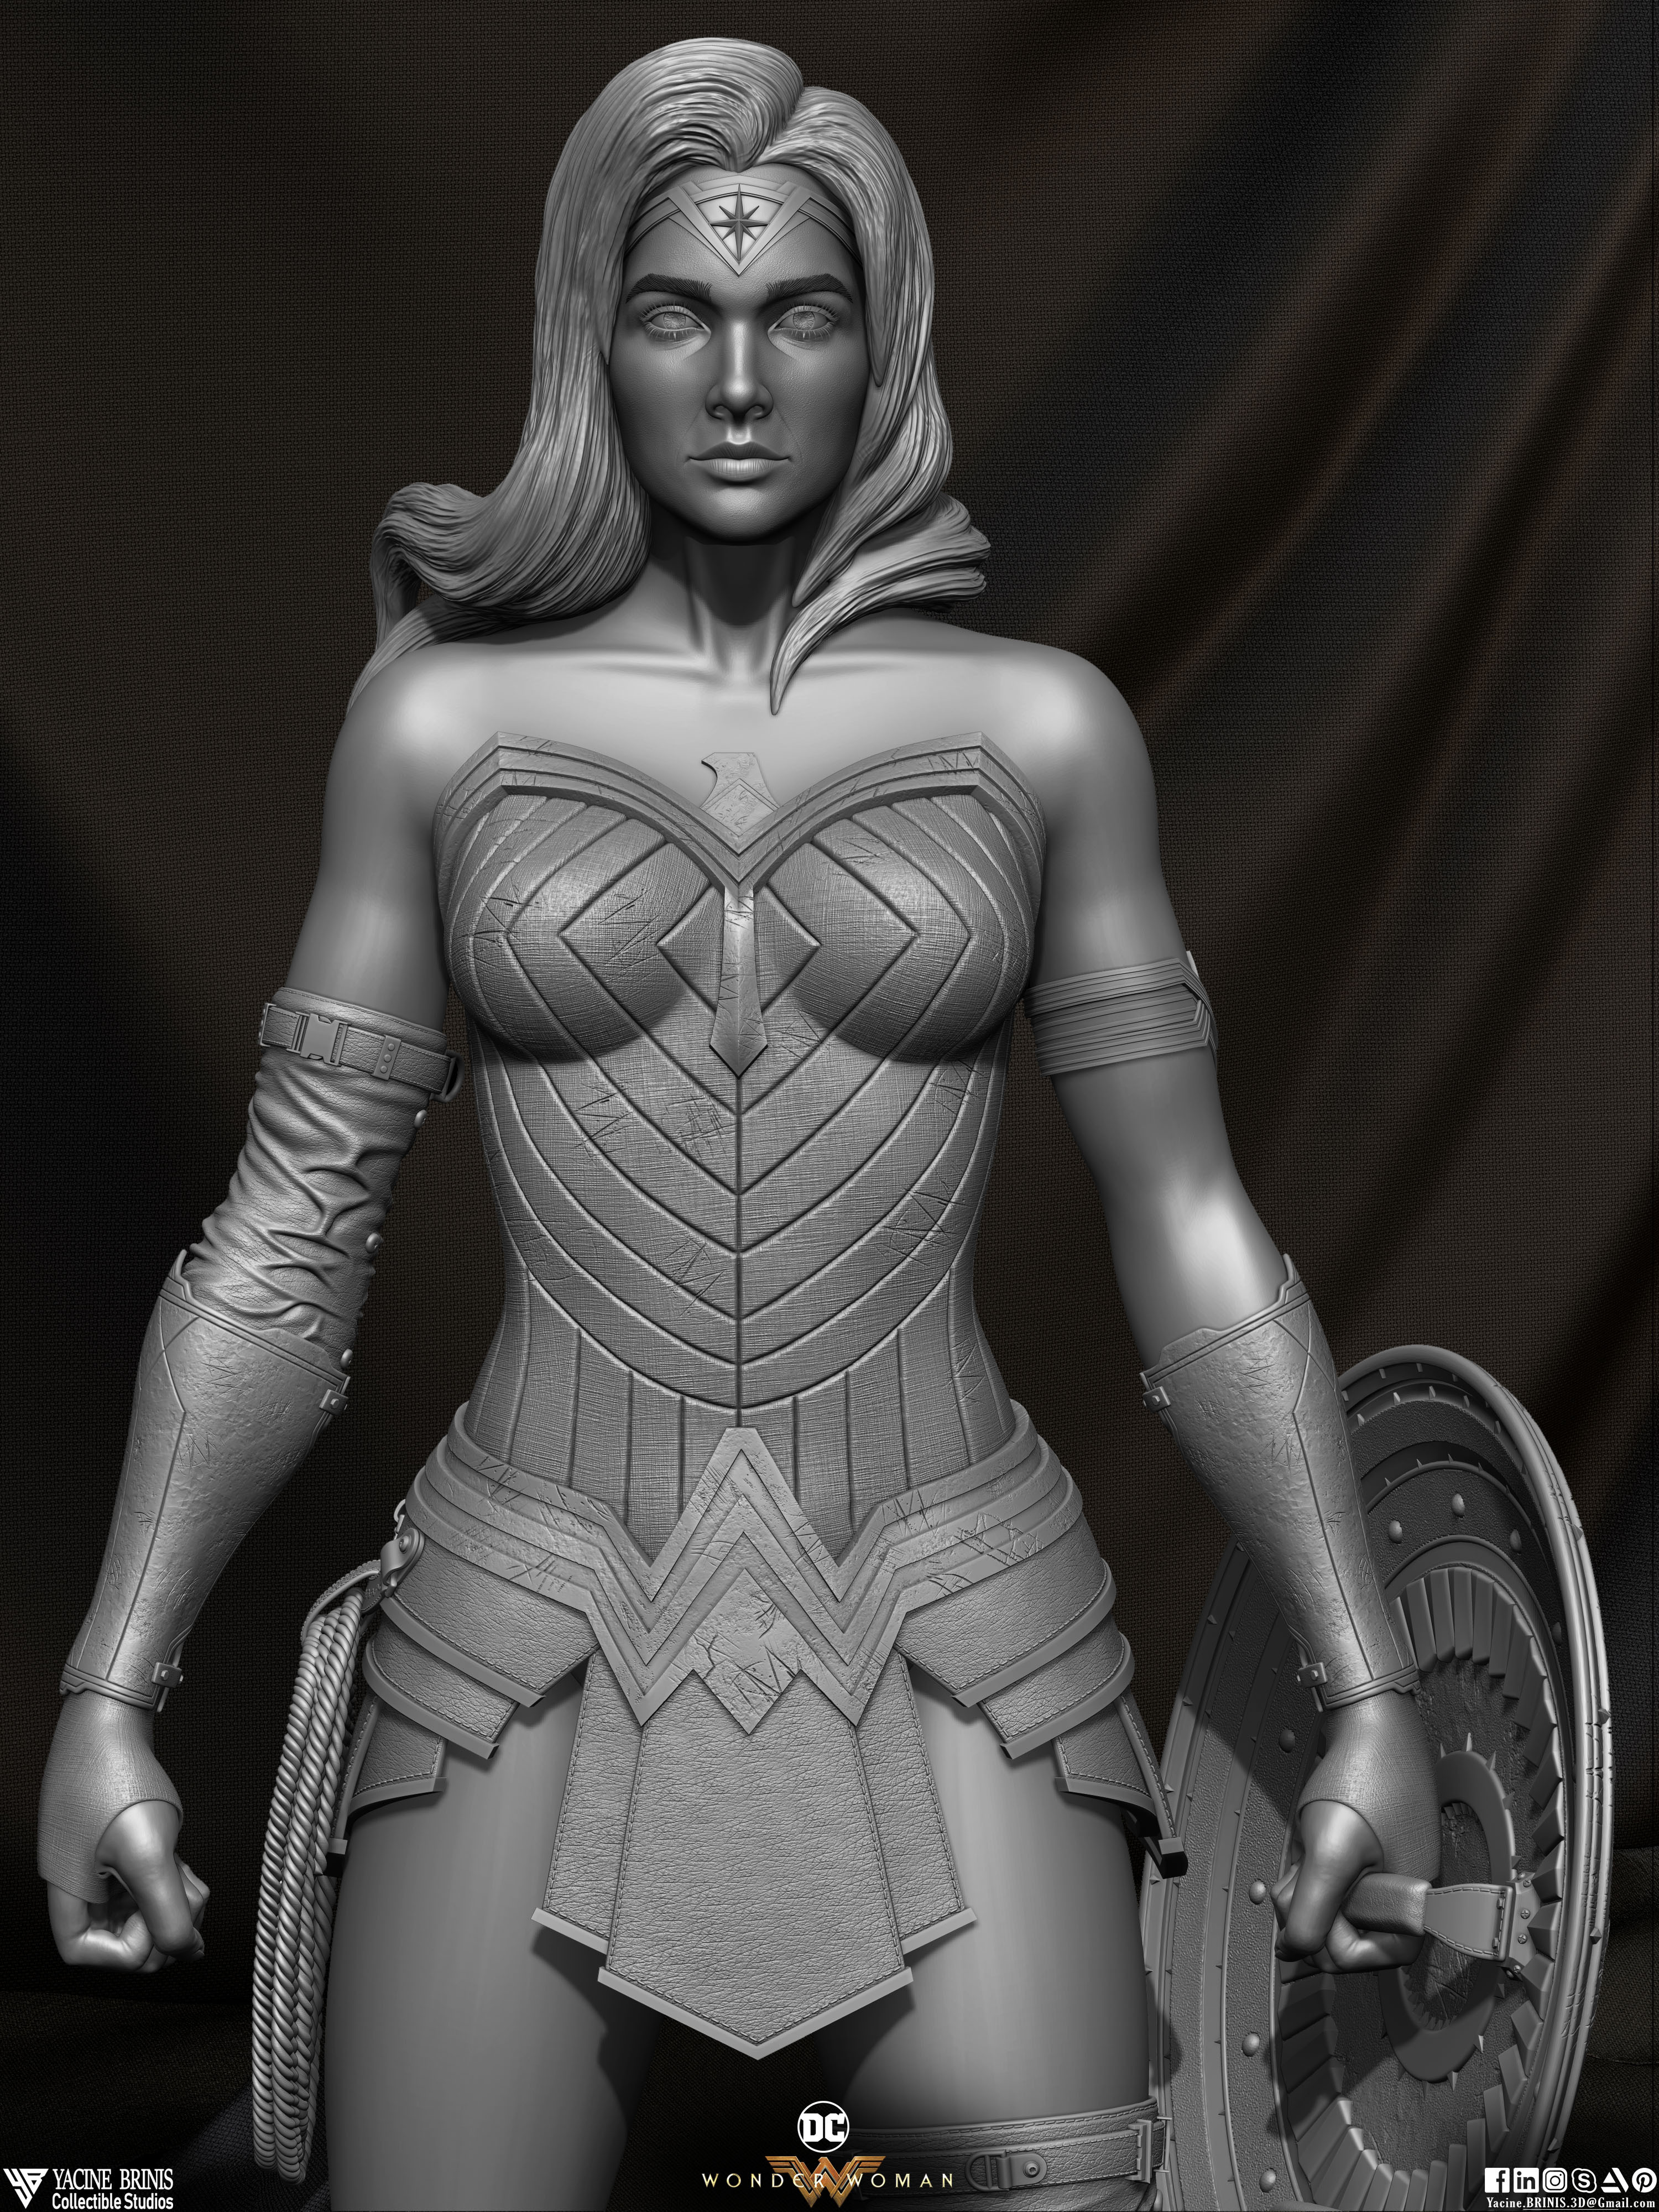 Wonder Woman ZBrush Version, Personal Project (Sculpted By Yacine BRINIS) Set 03